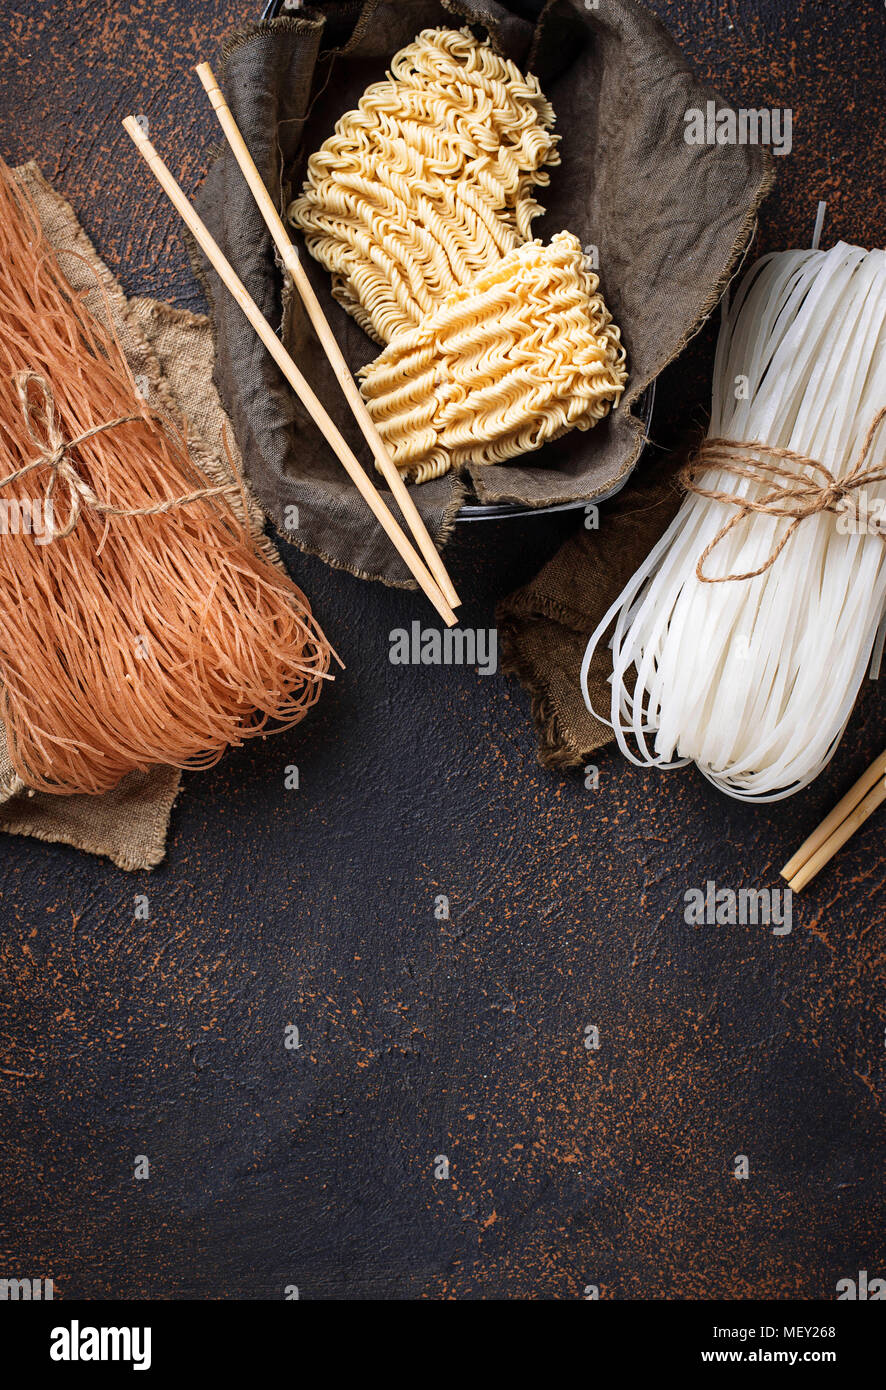 Different Asian rice noodles on rusty background - Stock Image